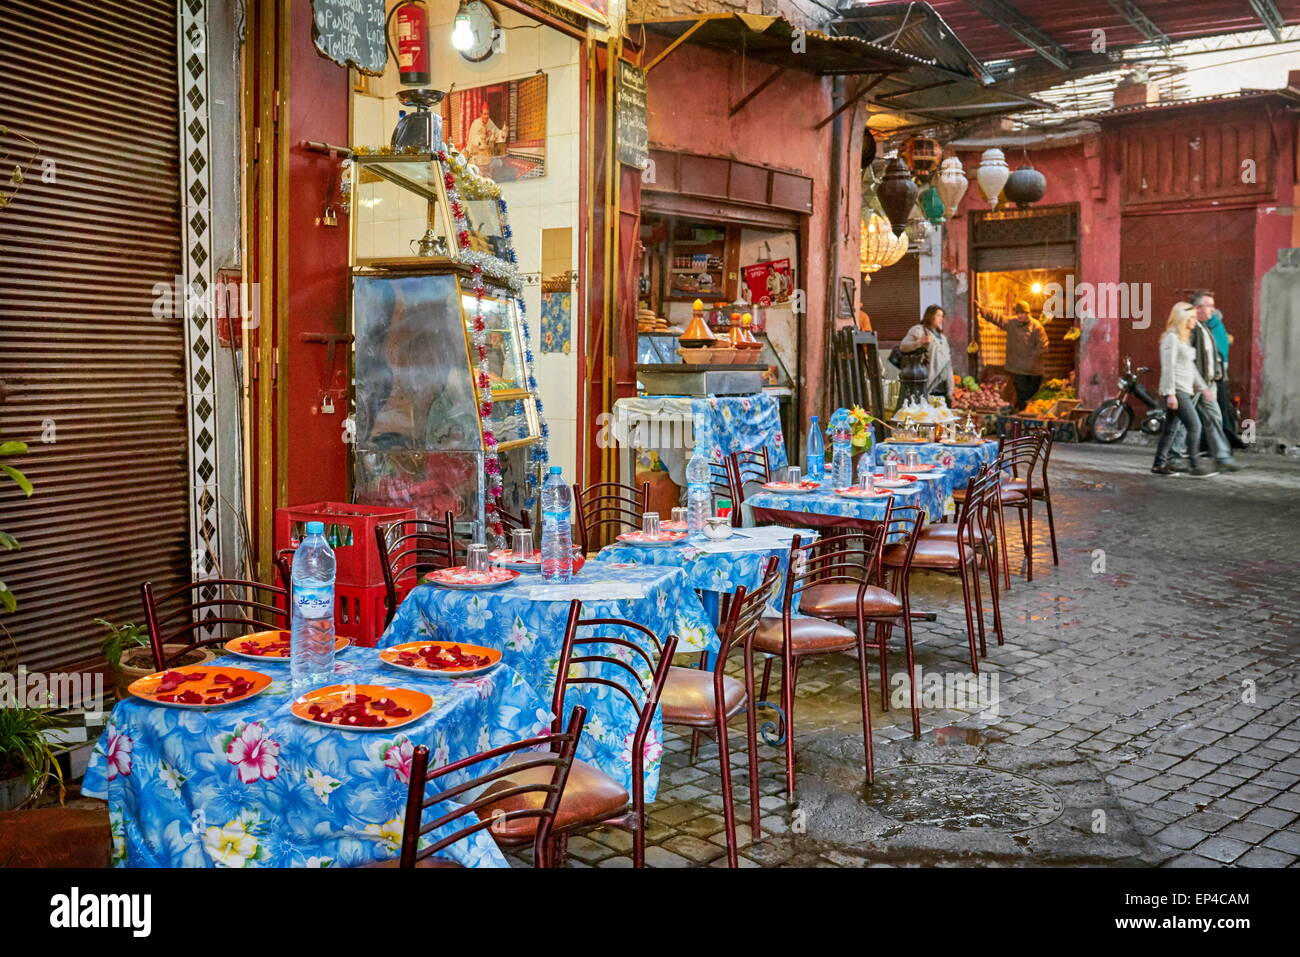 A local street restaurant near of the Djemaa el-Fna Square, Marrakech Medina, Morocco, Africa - Stock Image